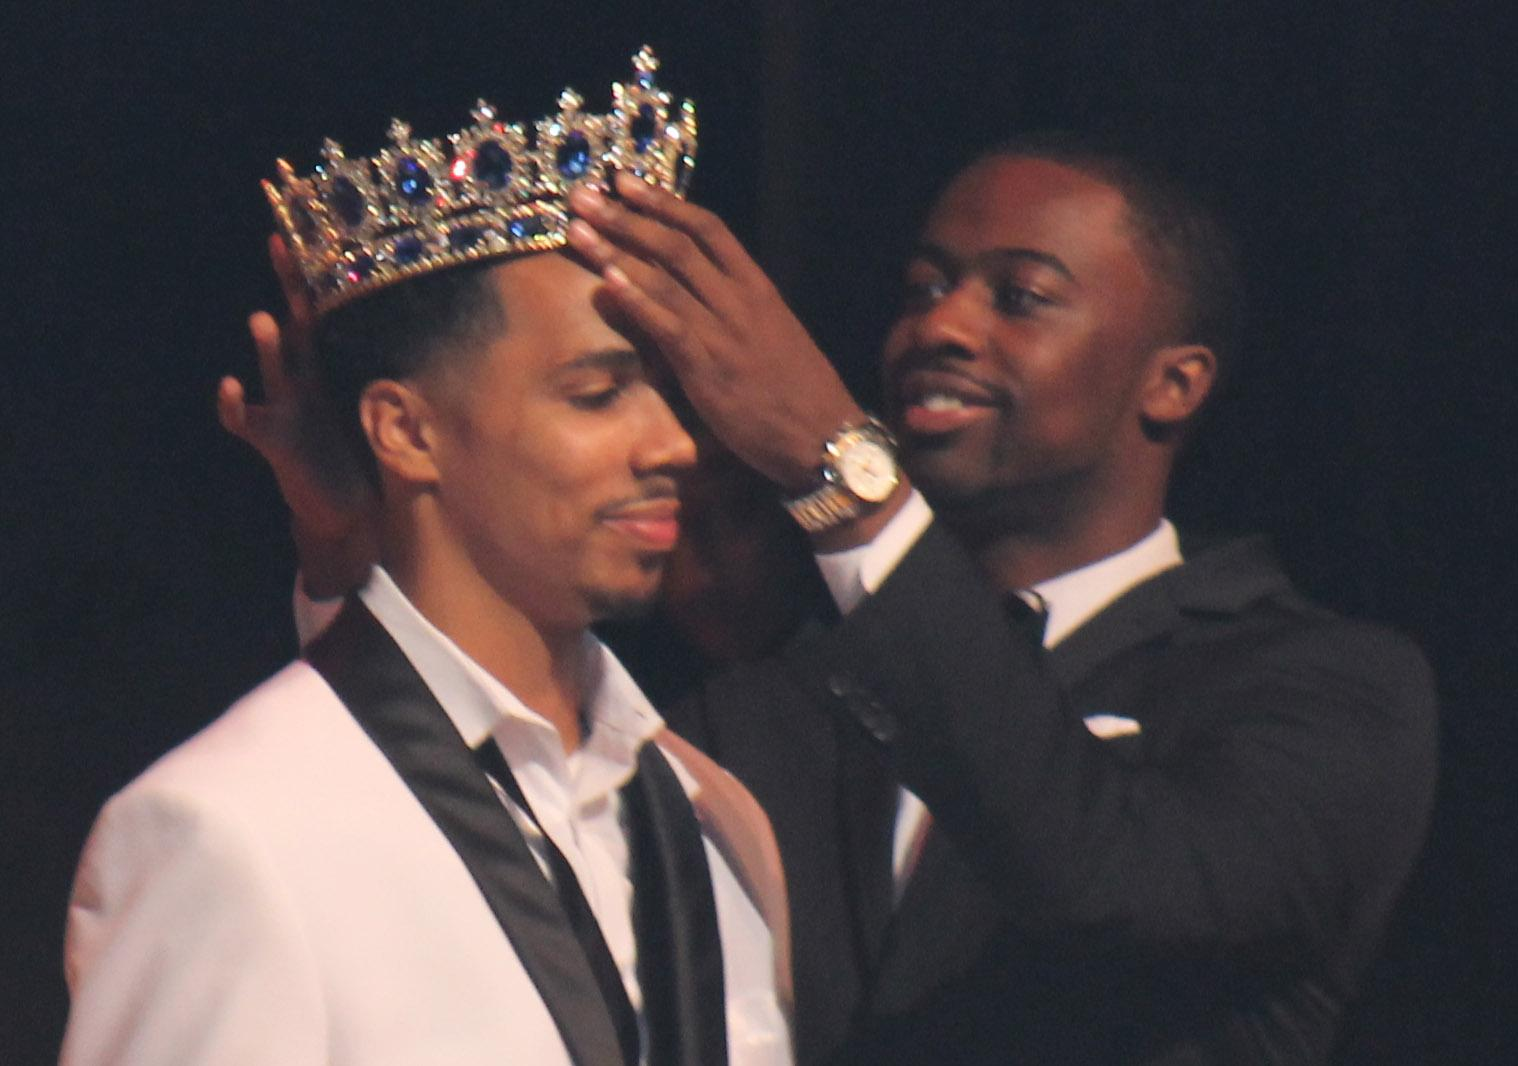 Monzona Whaley is crowned Mr. Morgan